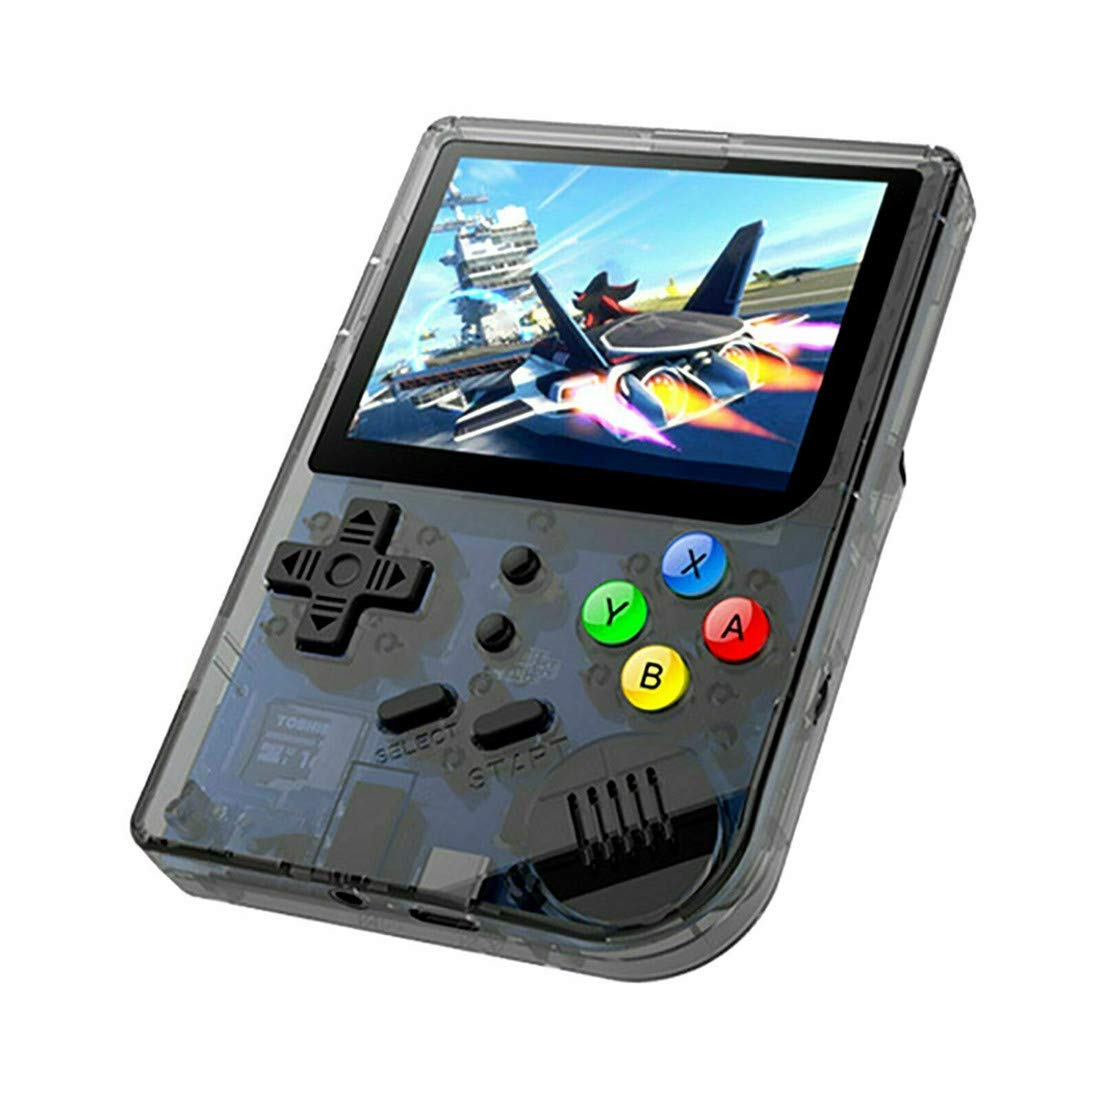 3 INCH Video Games Portable Retro FC Console New BittBoy Retro Game Handheld Games Console Player RG 300 16G 3000 Games Best Gift (Black) by Neutral (Image #2)